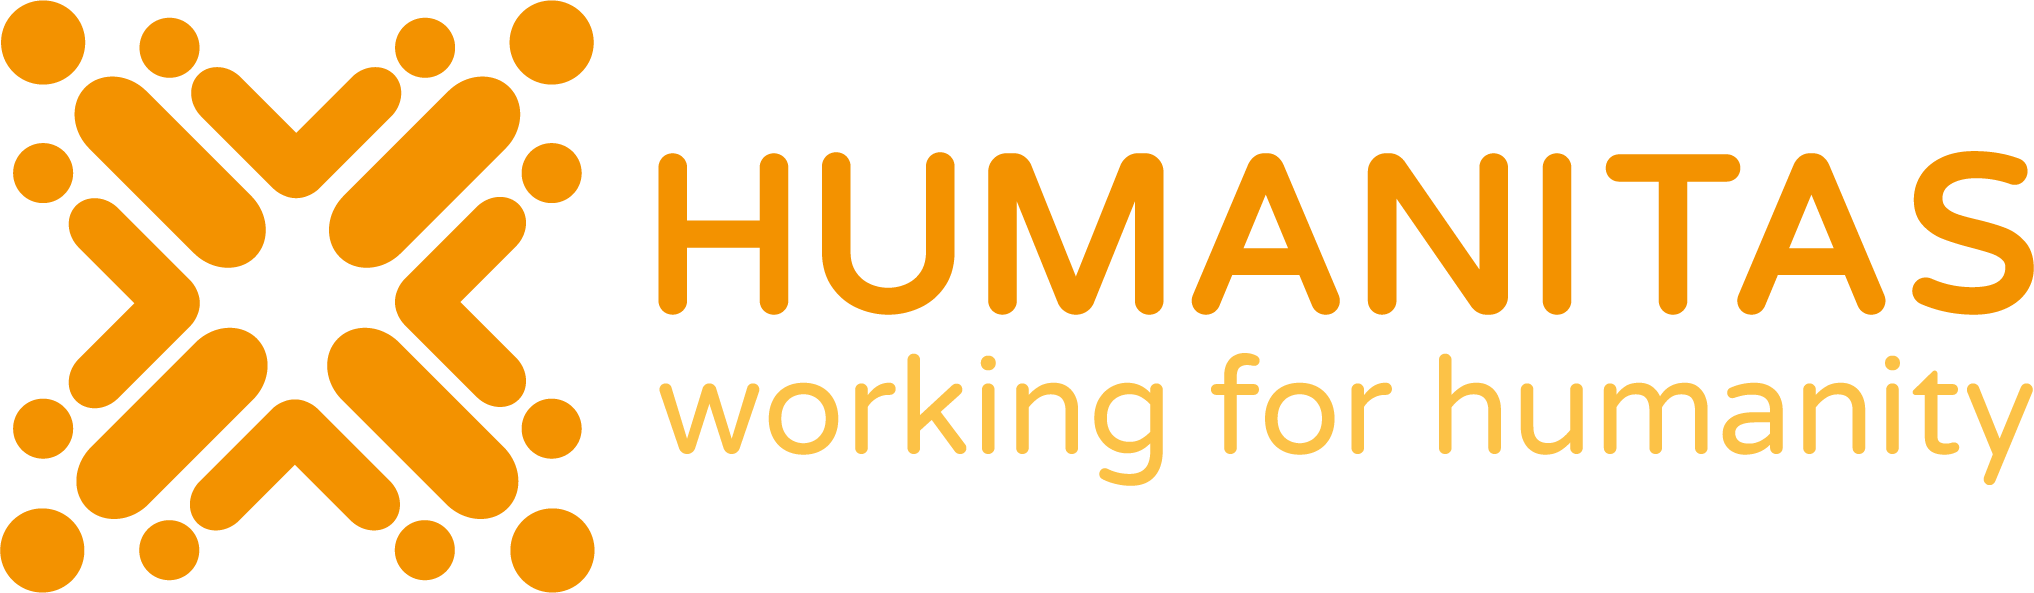 HumanitasLogoSecondary_large.png